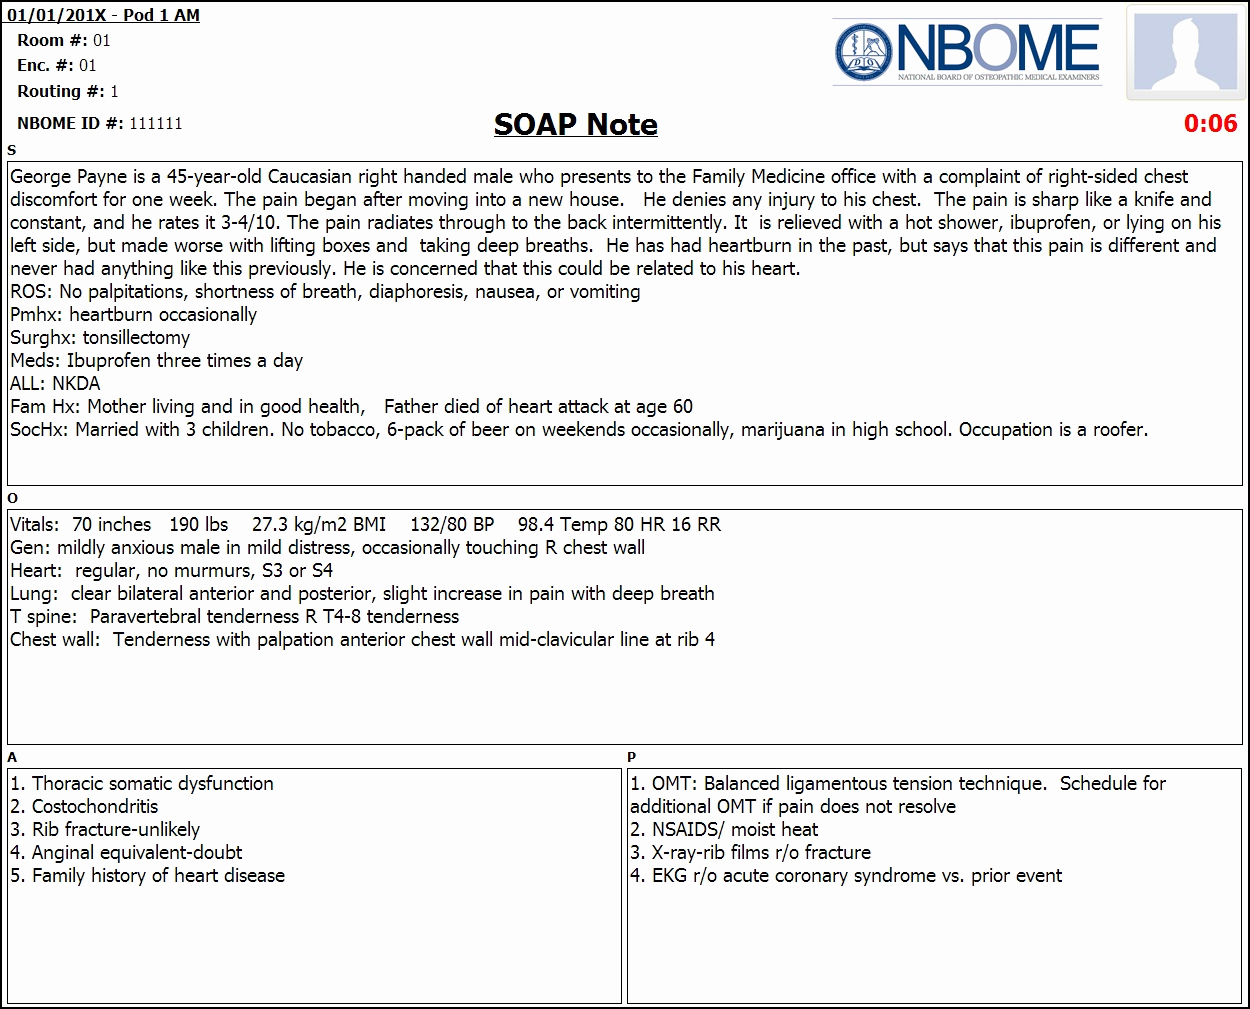 Example Of soap Note Awesome Pleted Esoap Note Sample — Nbome